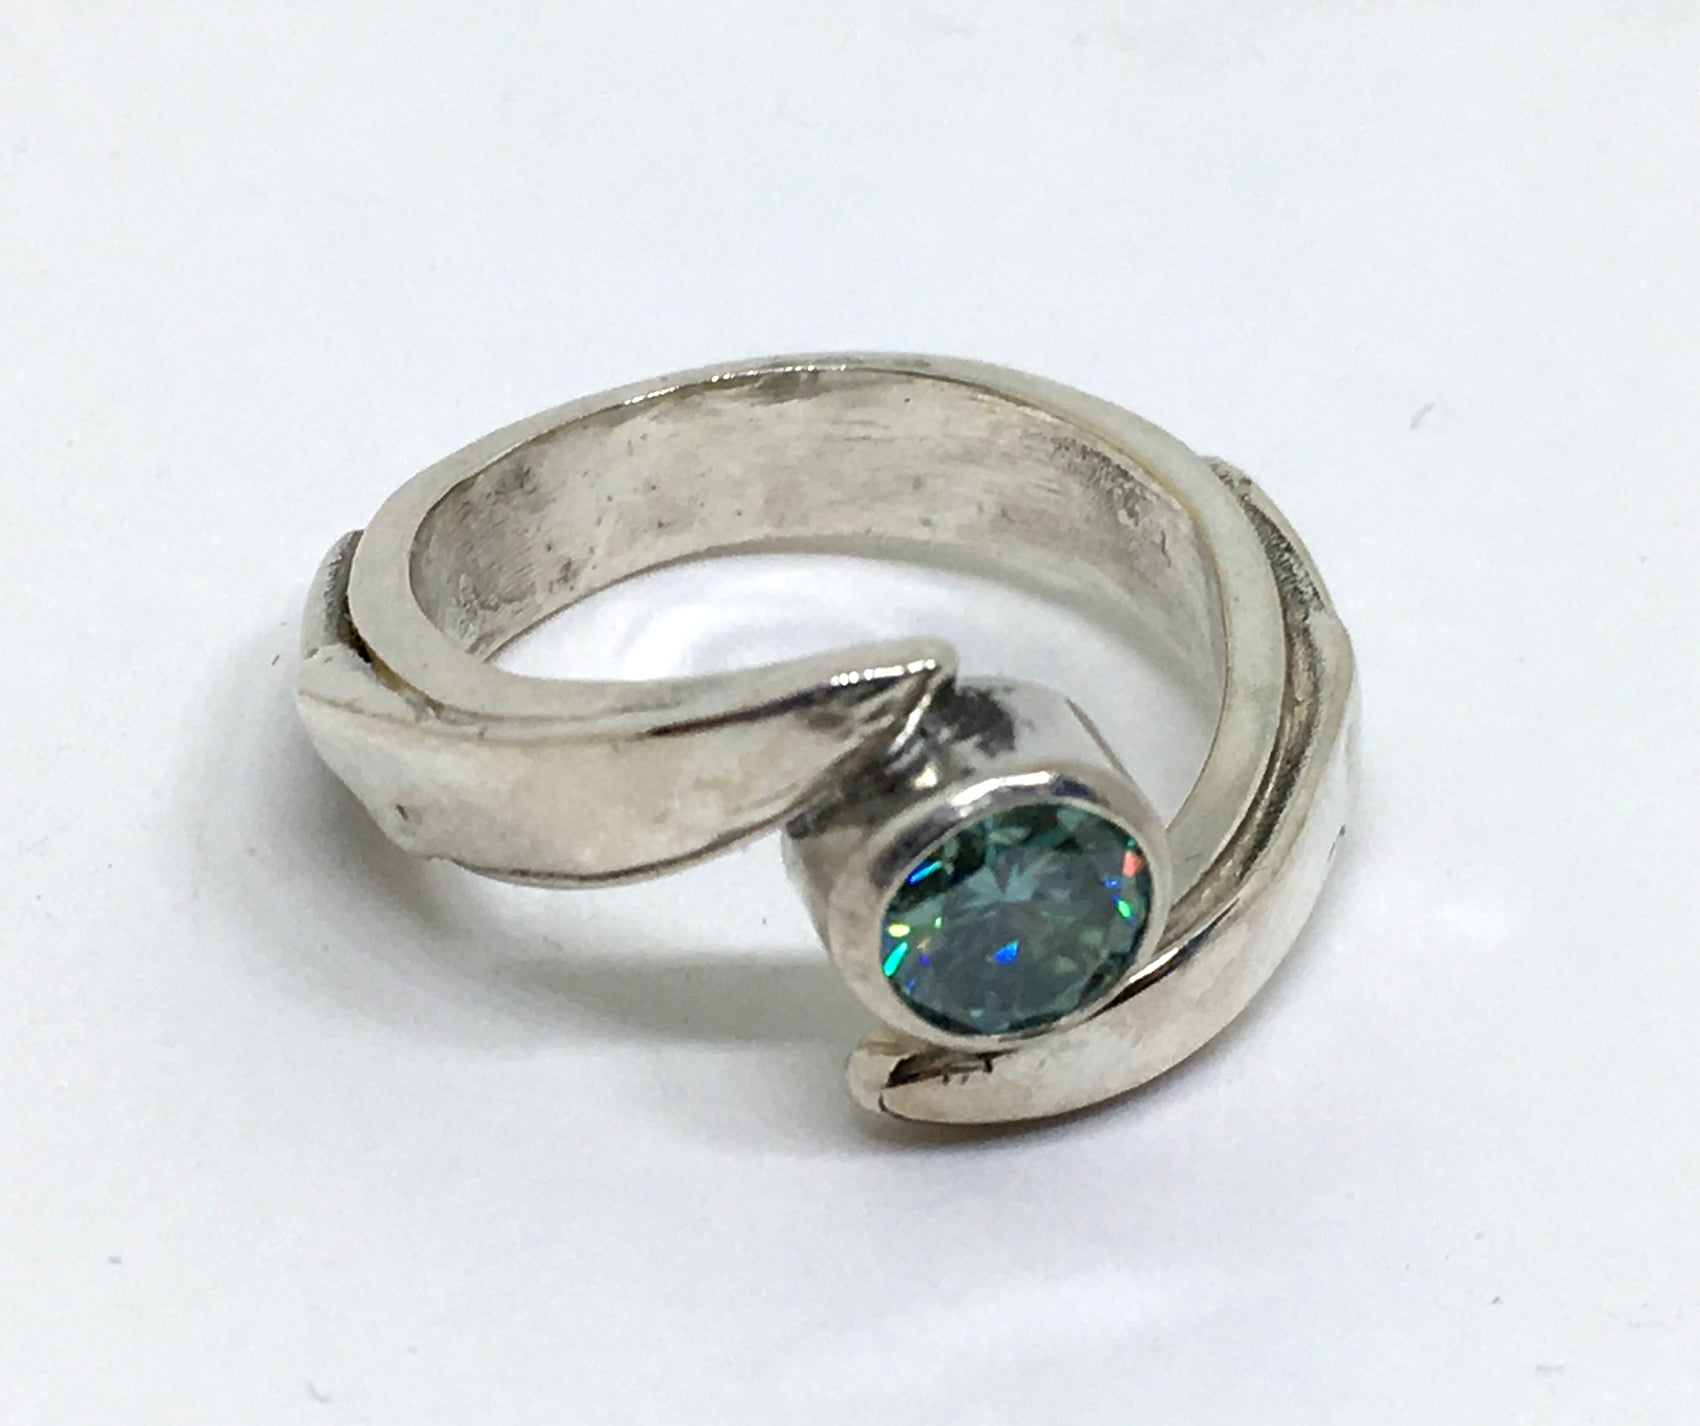 Chef's Engagement Ring with Blue Moissanite in Sterling Silver